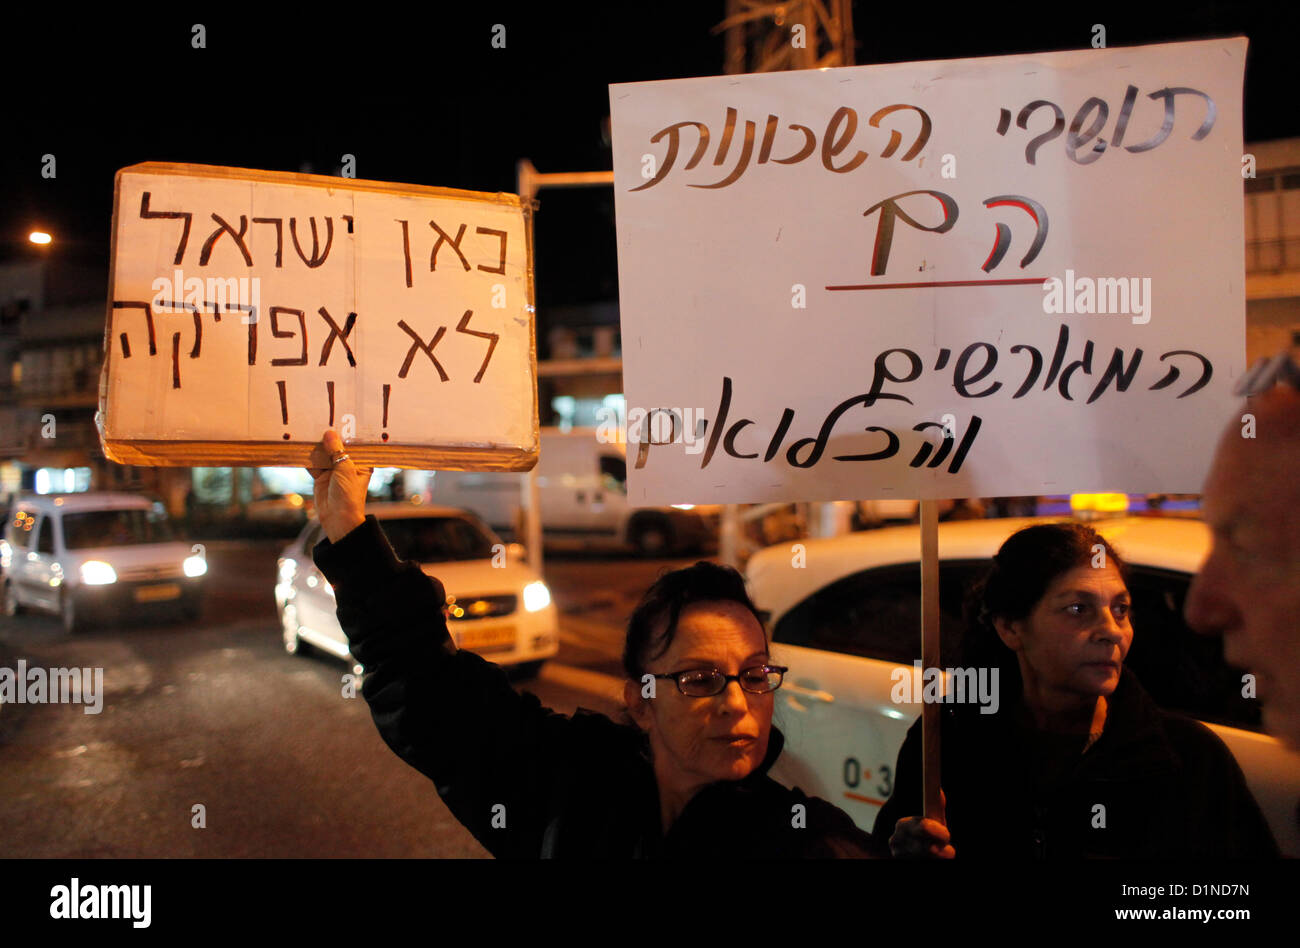 An Israeli woman holds a cardboard sign in Hebrew which reads 'This is Israel not Africa' during a demonstration - Stock Image